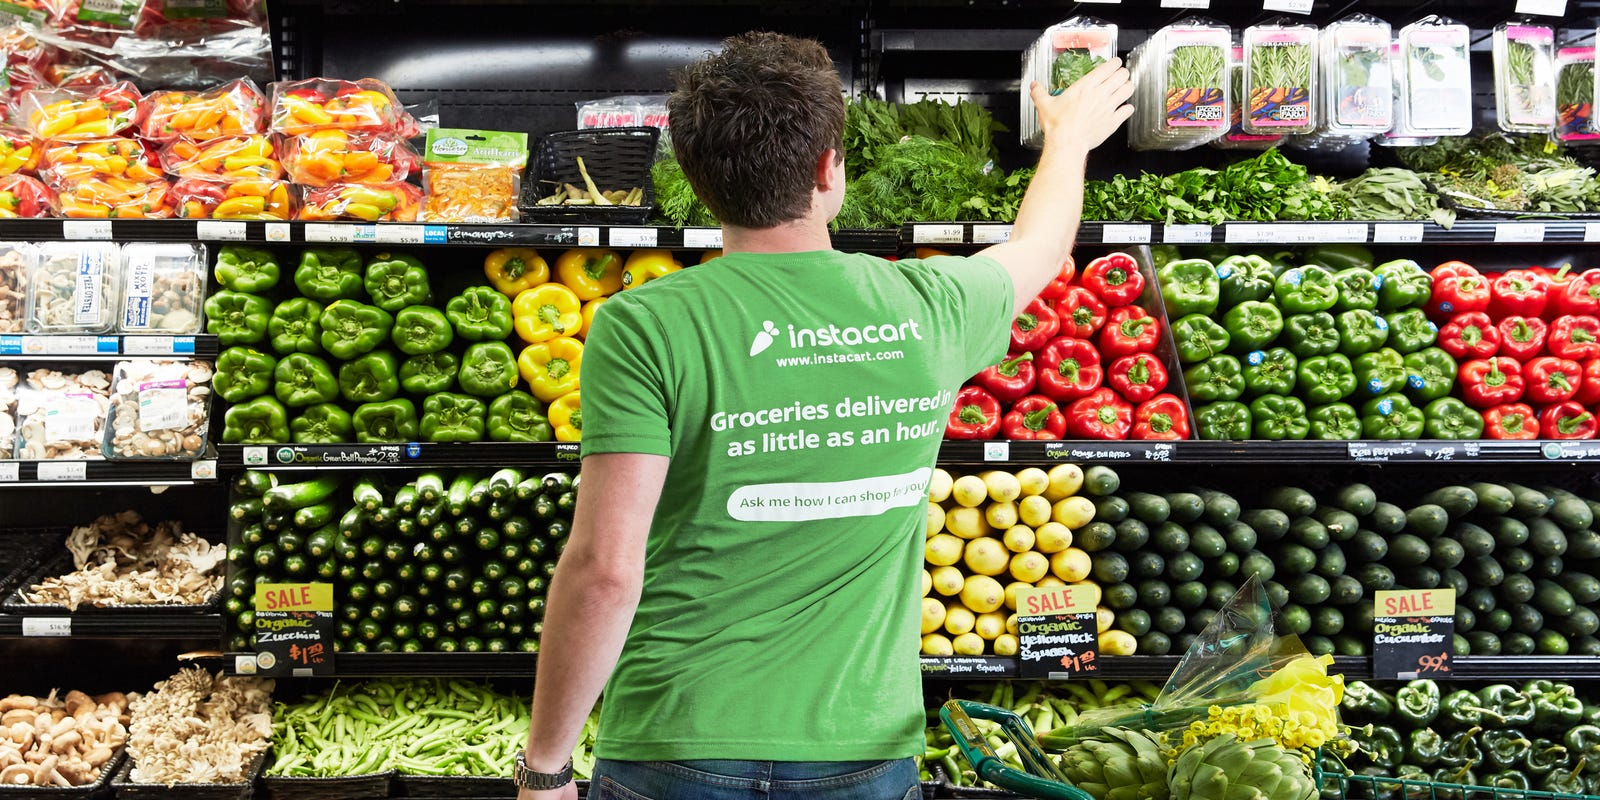 Food City joins Instacart delivery as Kroger expands ClickList shopping